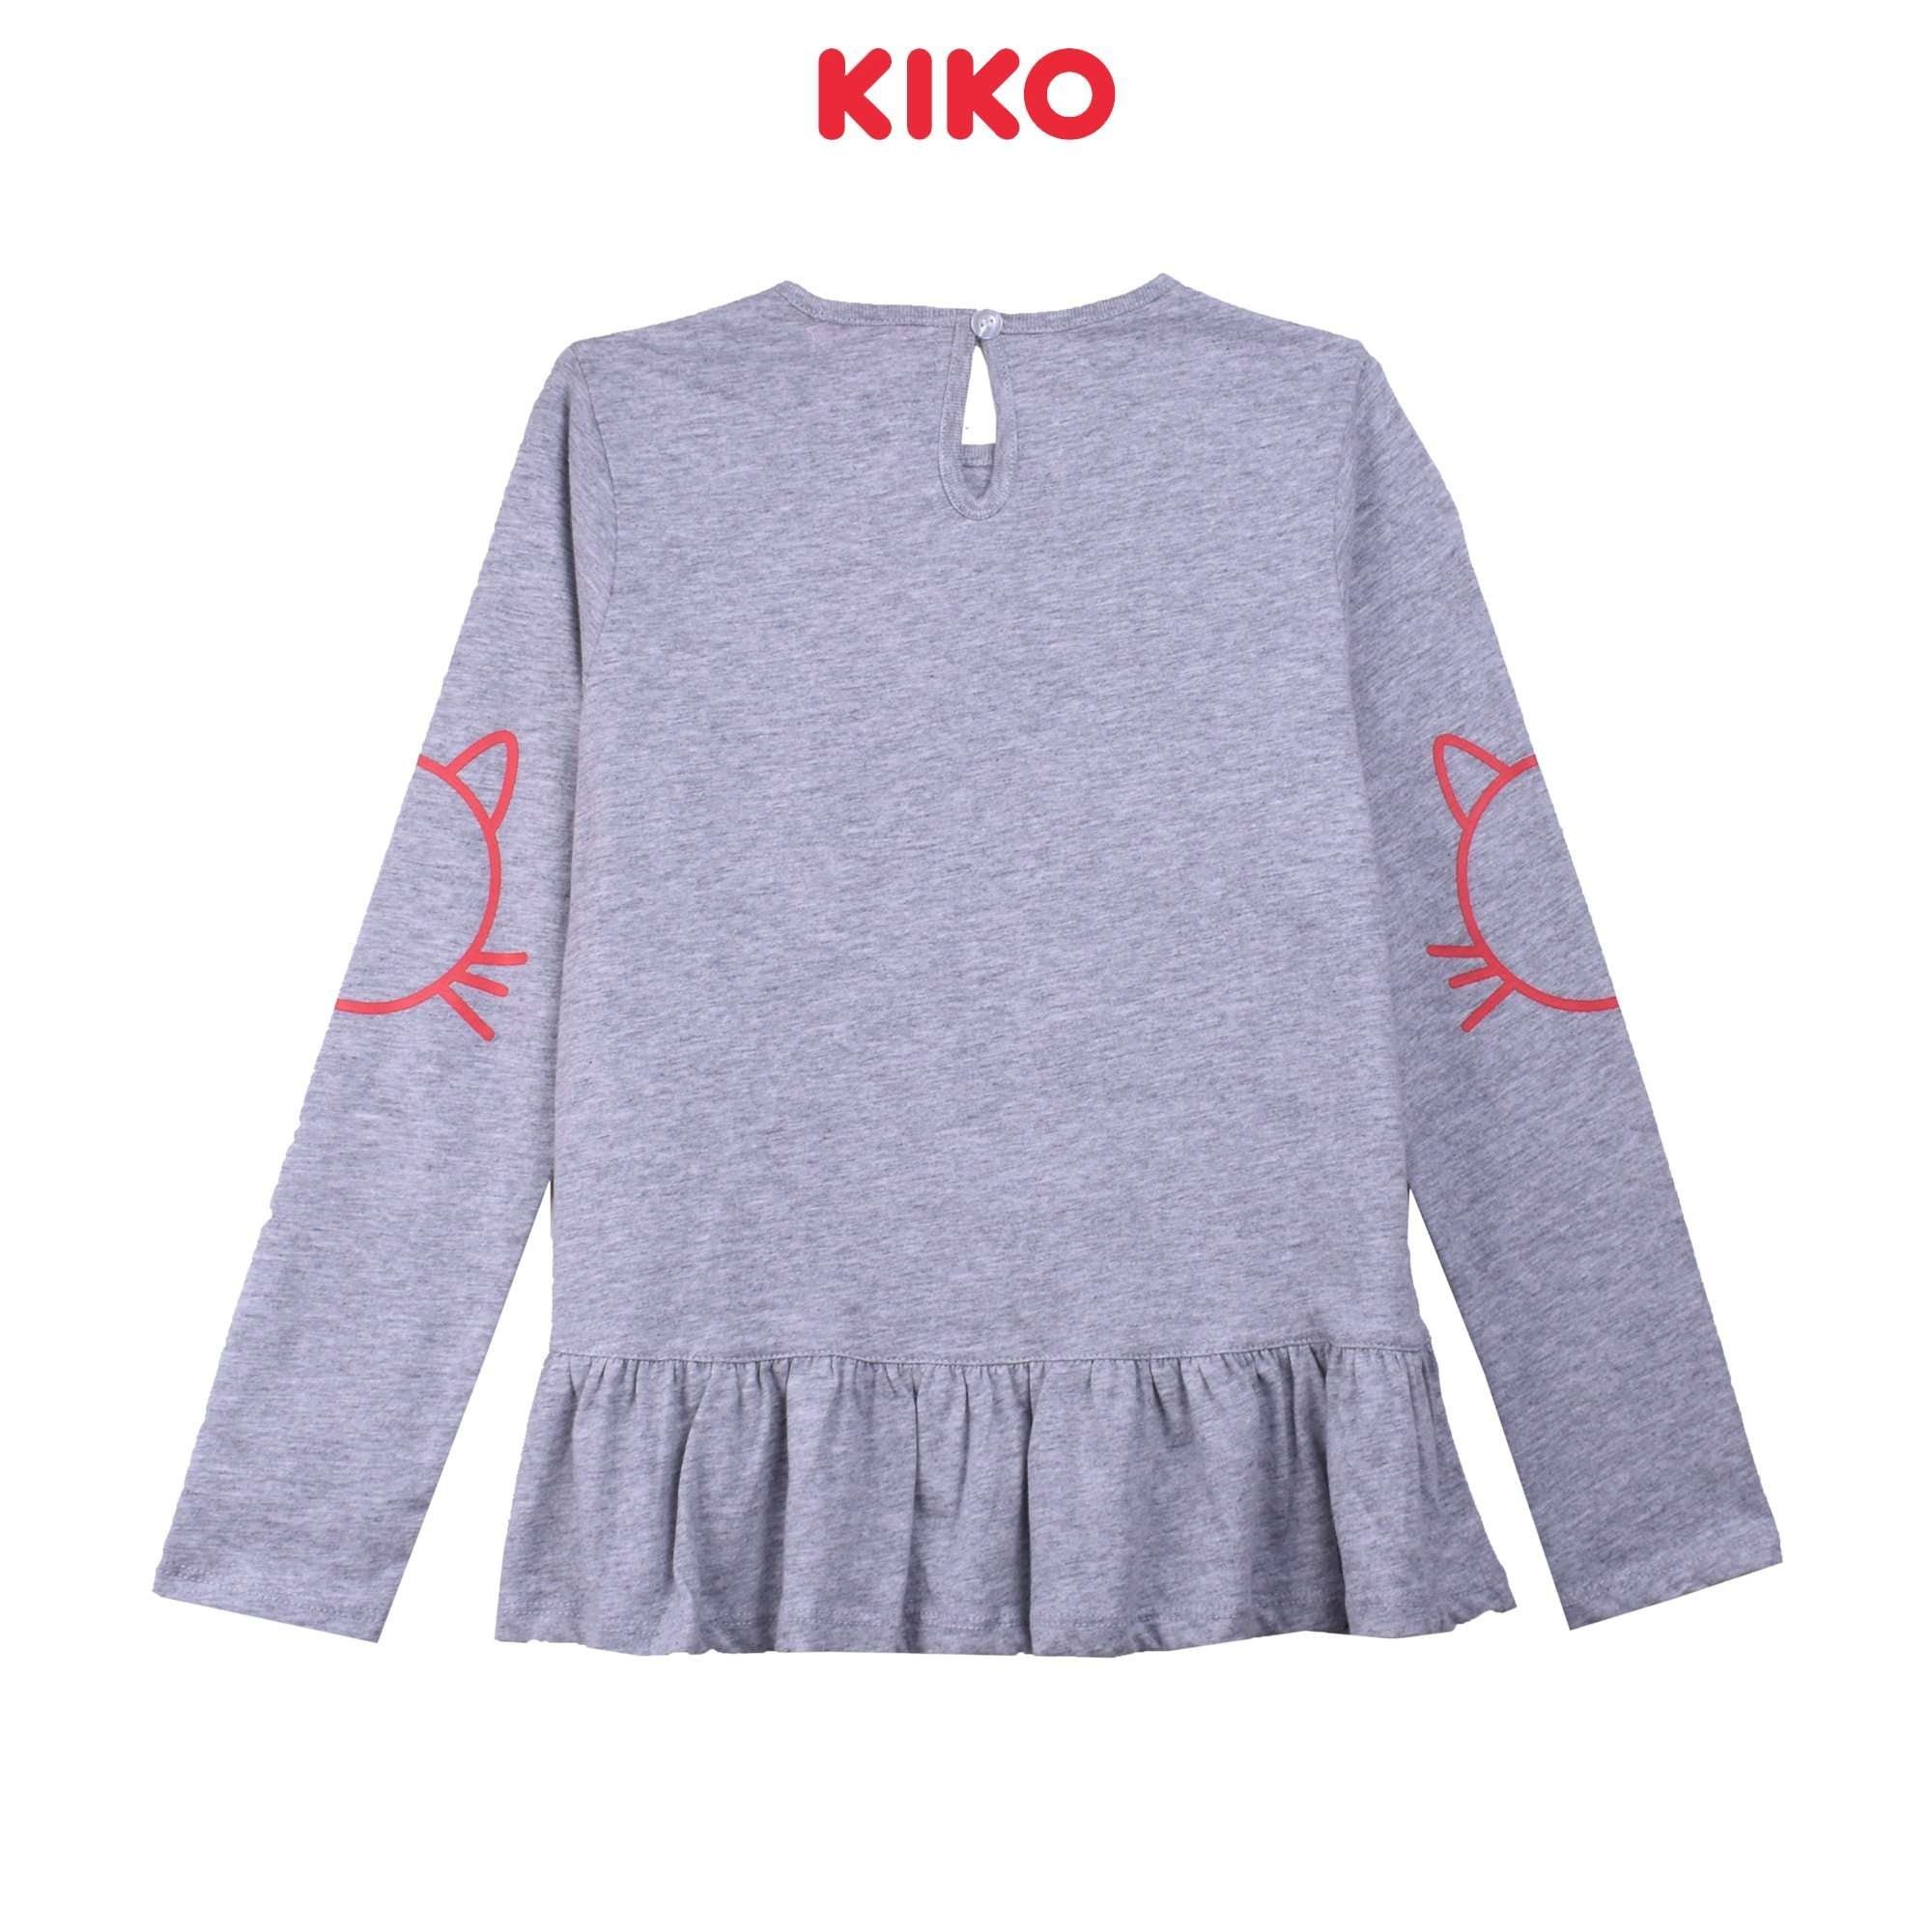 KIKO Girl Long Sleeve Tee K925001-1312-G5 : Buy KIKO online at CMG.MY